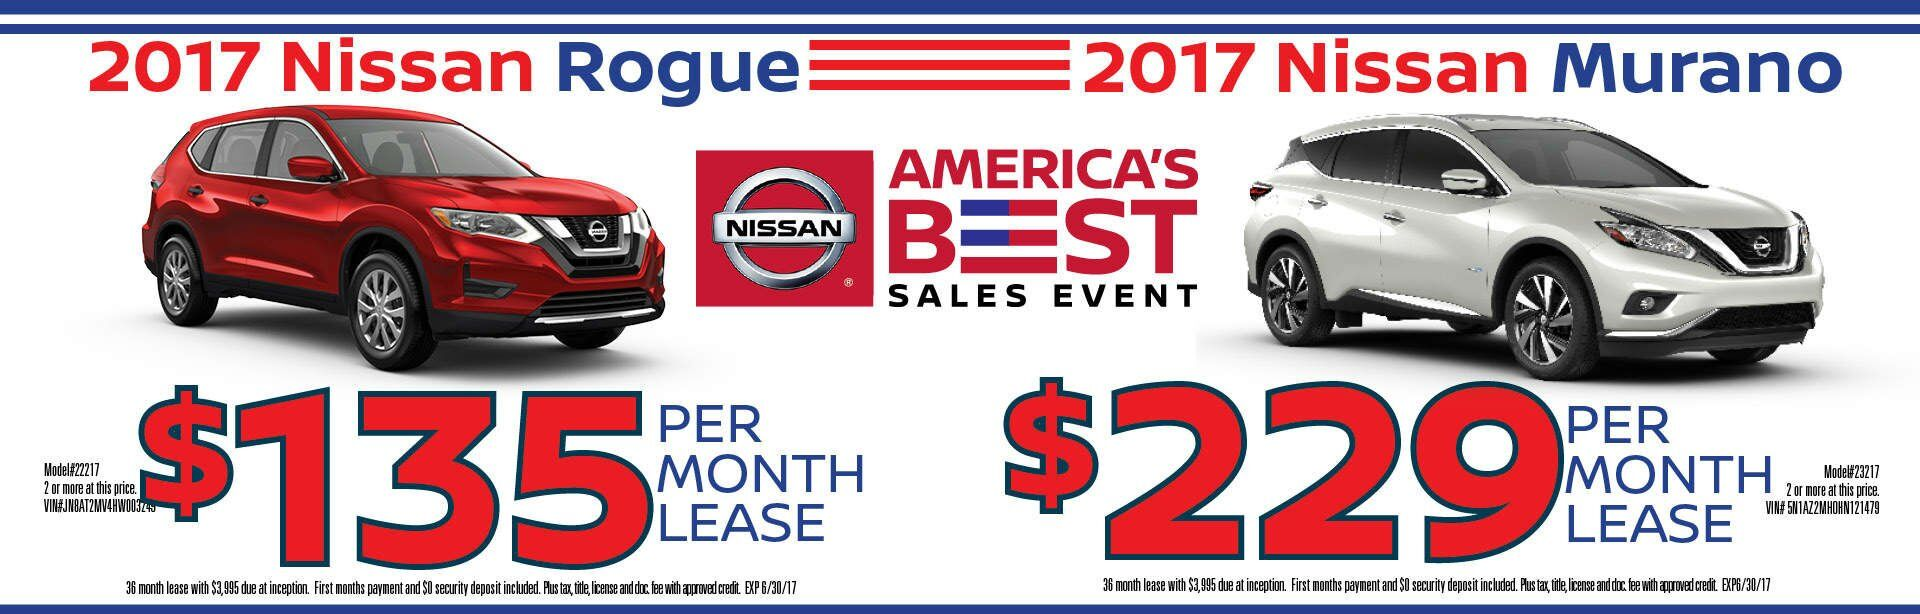 America's Best sales event lease offers for 2017 Altima Rogue Sentra Murano Chicago IL